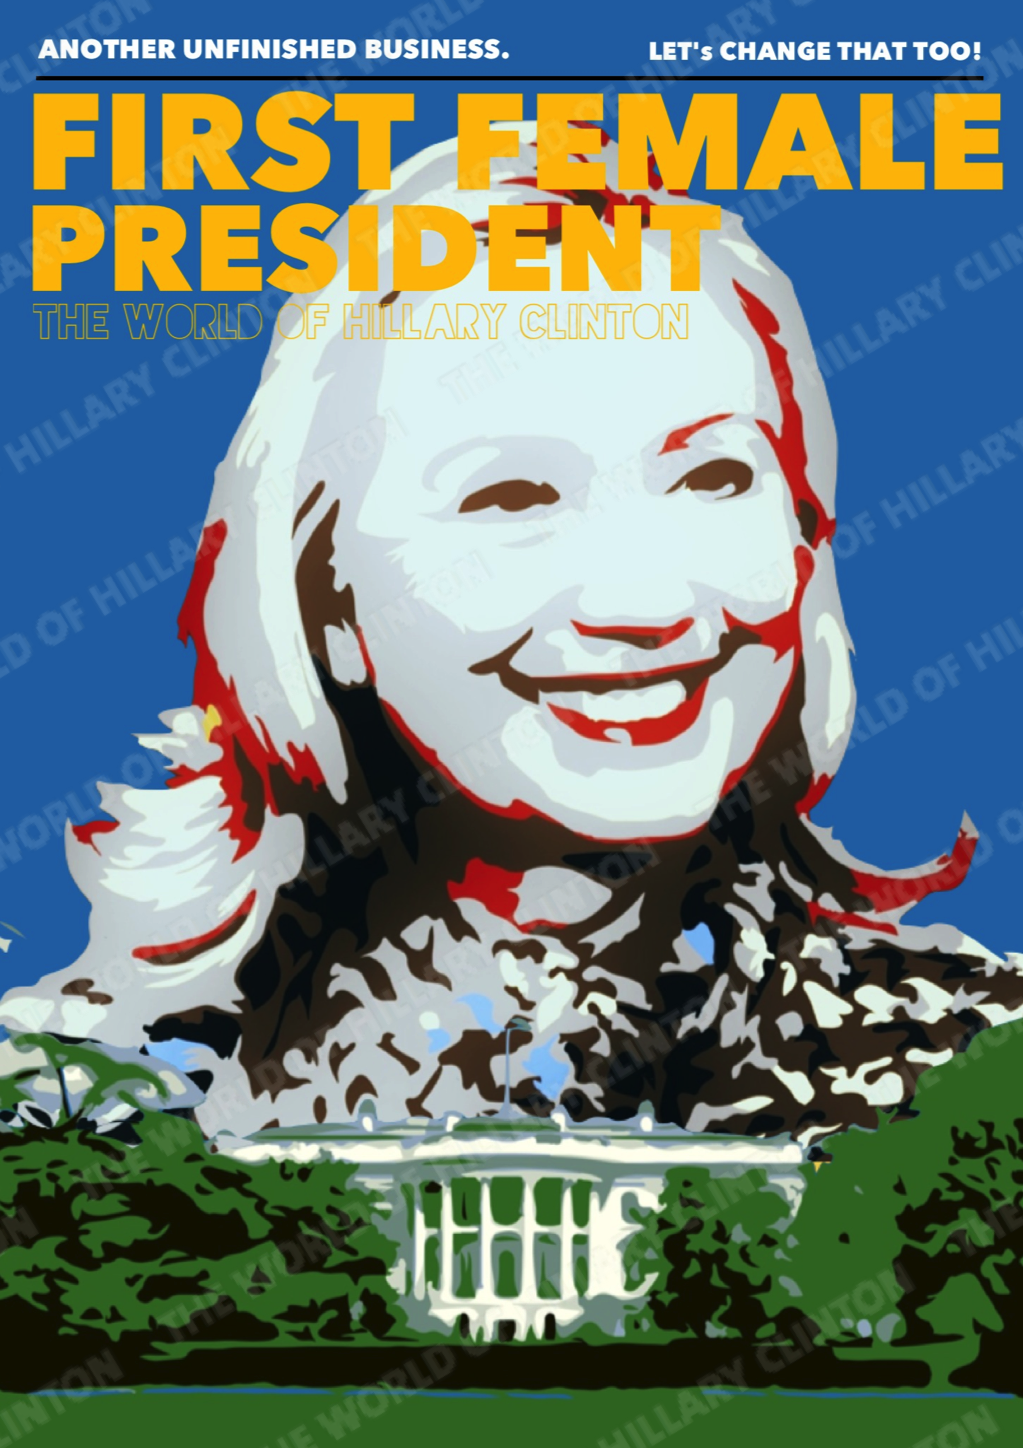 FIRST FEMALE PRESIDENT HILLARY CLINTON - UNFINISHED BUSINESS - LETS MAKE IT HAPPEN - THE WORLD OF HILLARY CLINTON - 2016